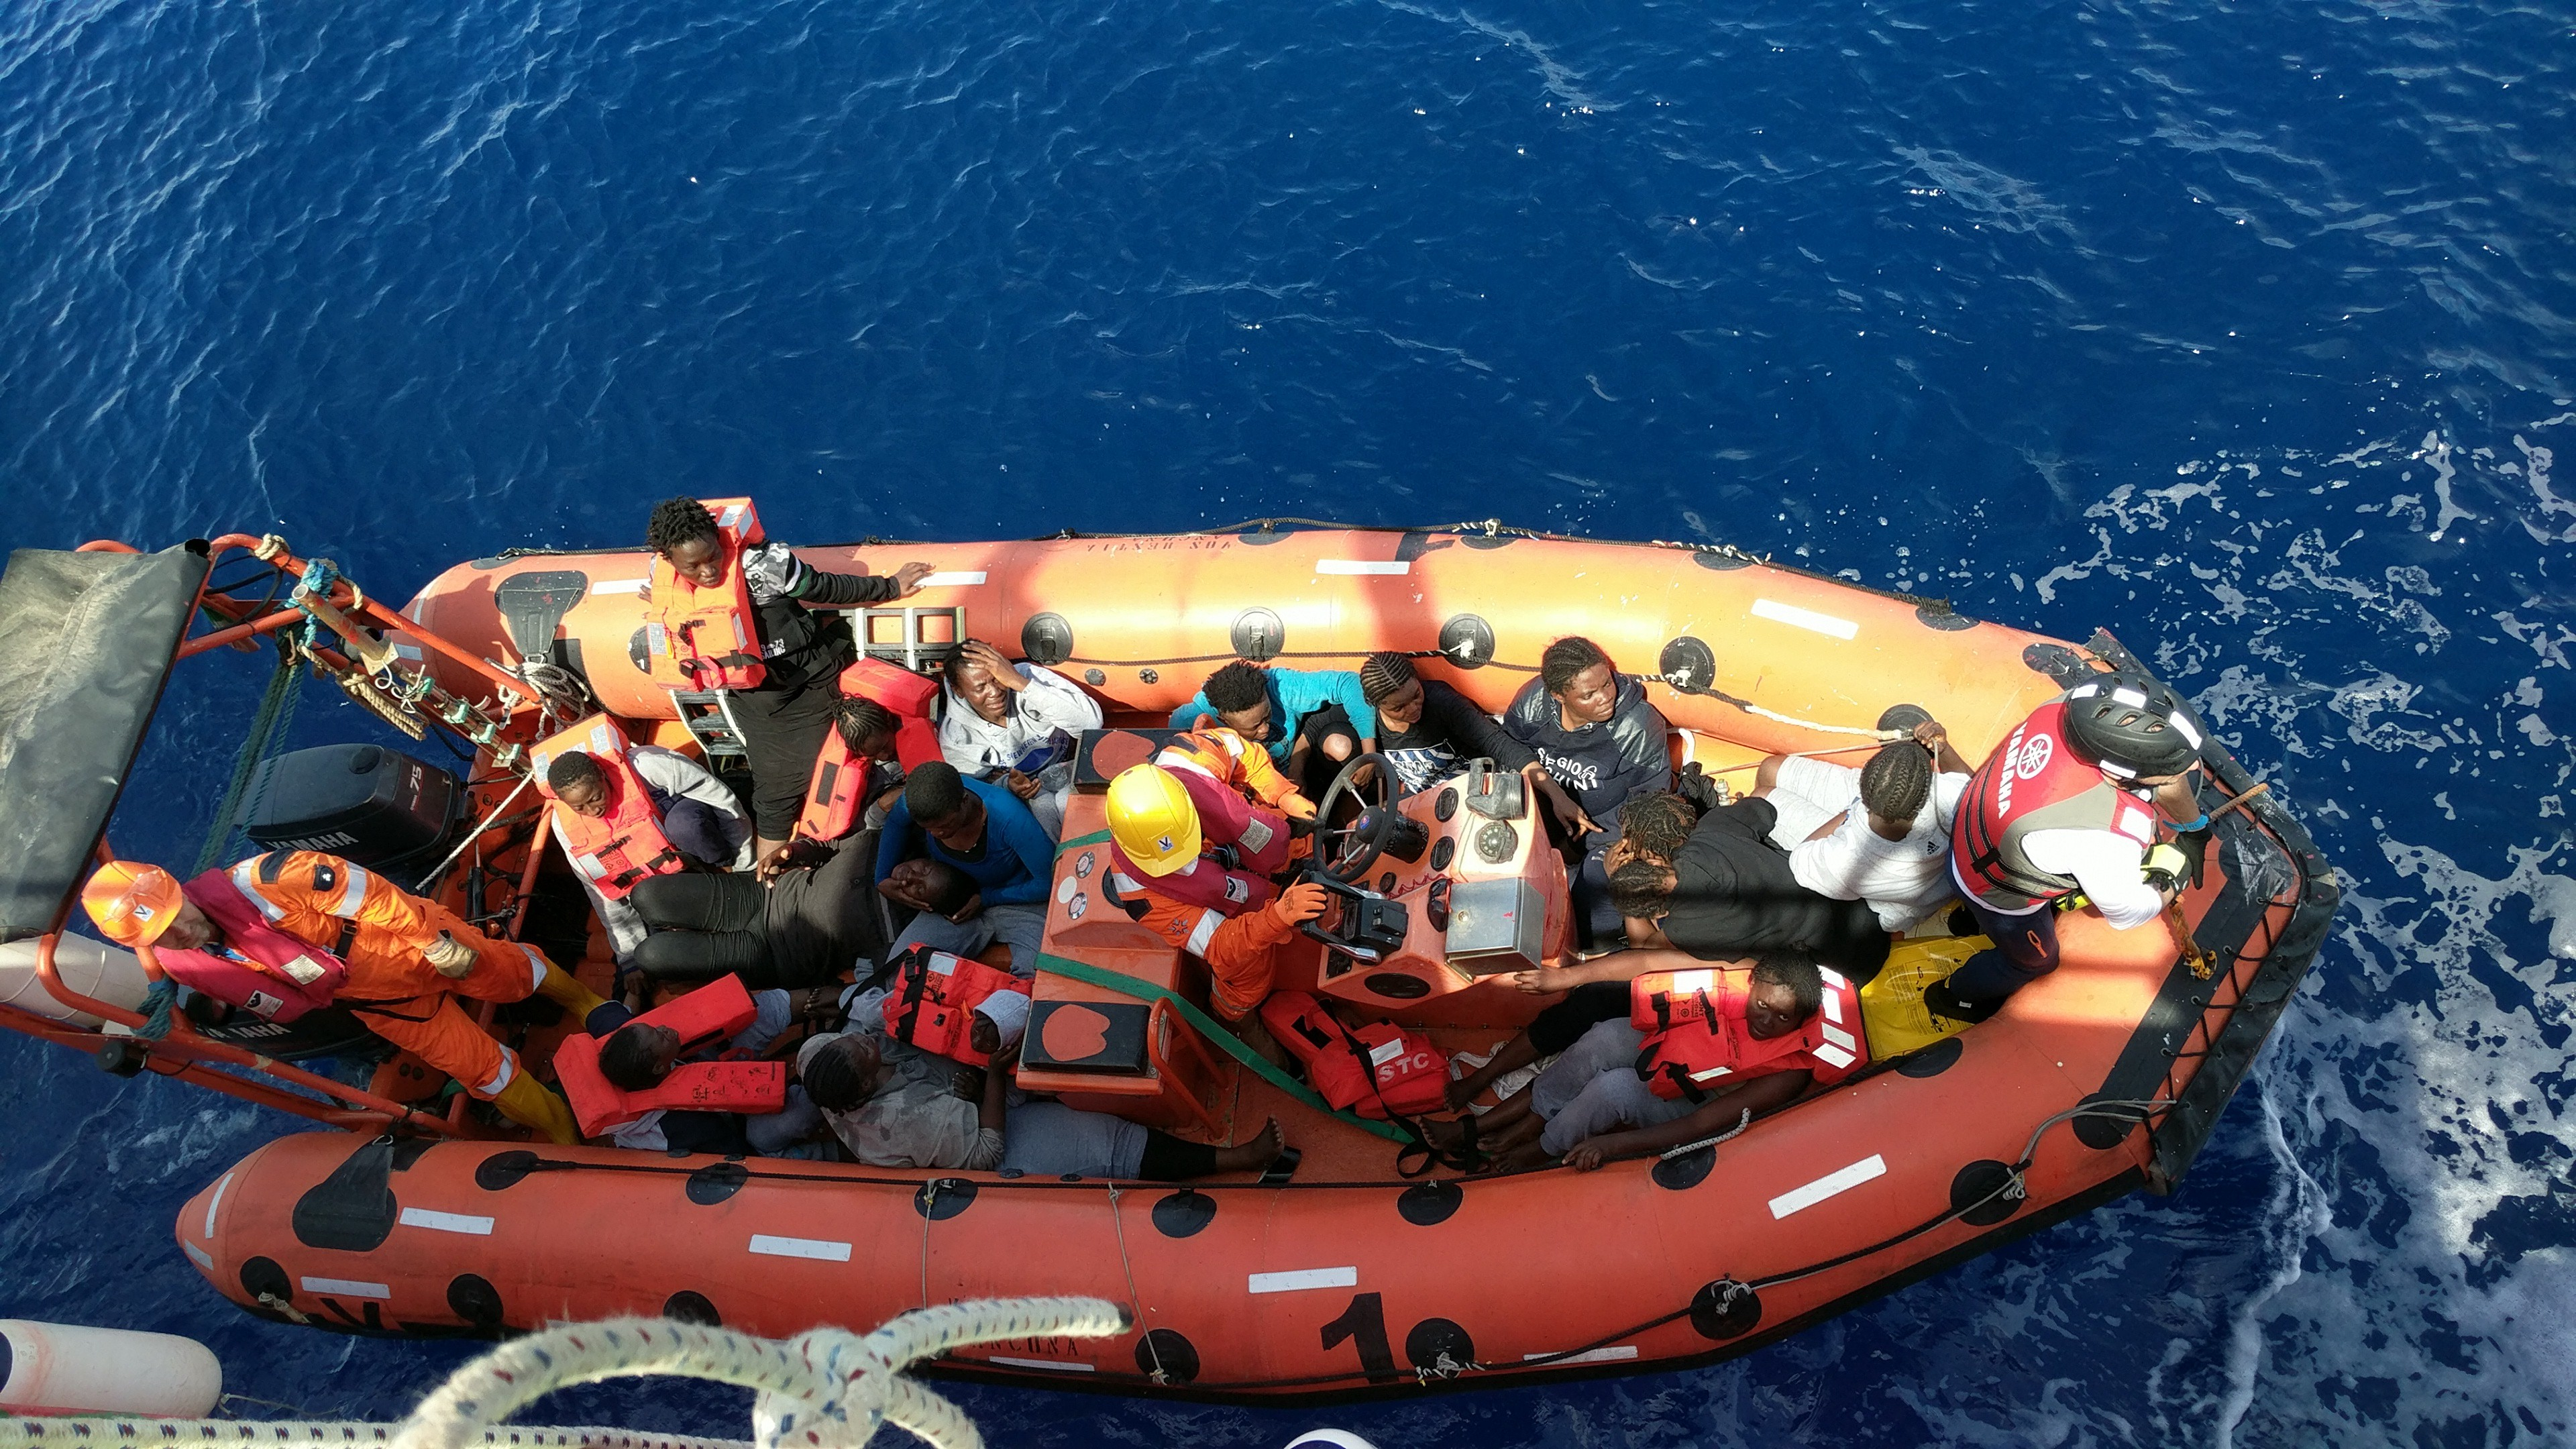 Inside Italy's plot to infiltrate migrant rescue boats in the